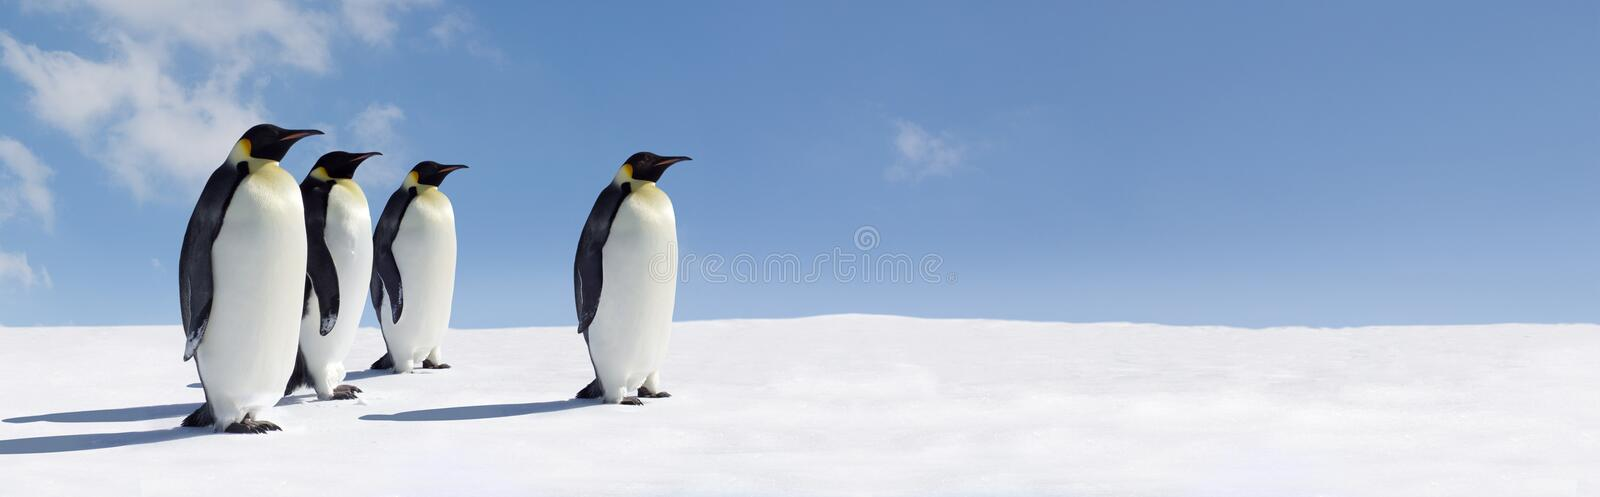 Penguins In Icy Panorama Stock Image